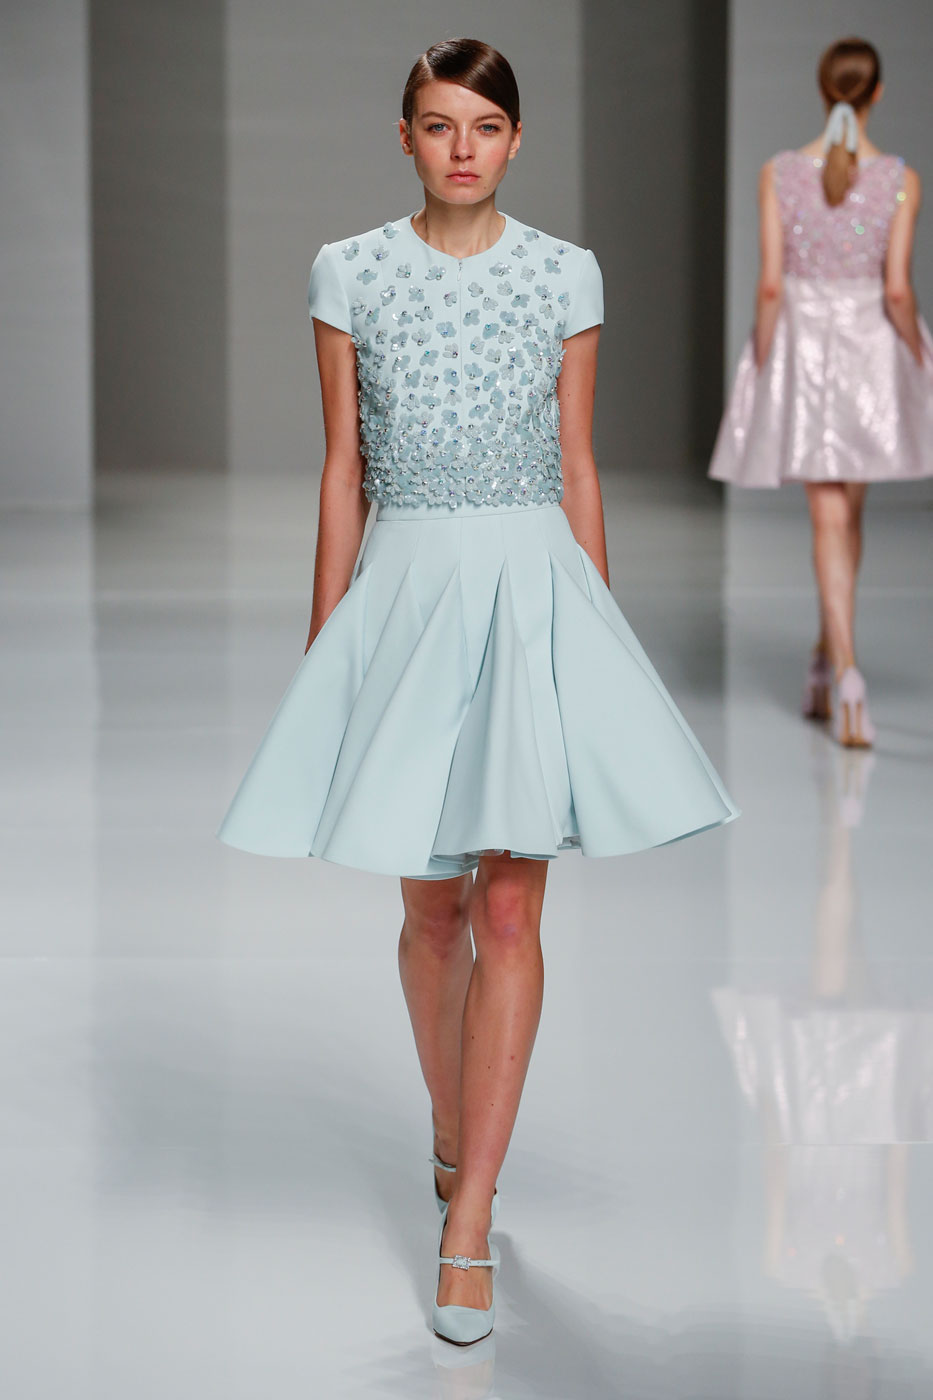 Georges-Hobeika-fashion-runway-show-haute-couture-paris-spring-2015-the-impression-11